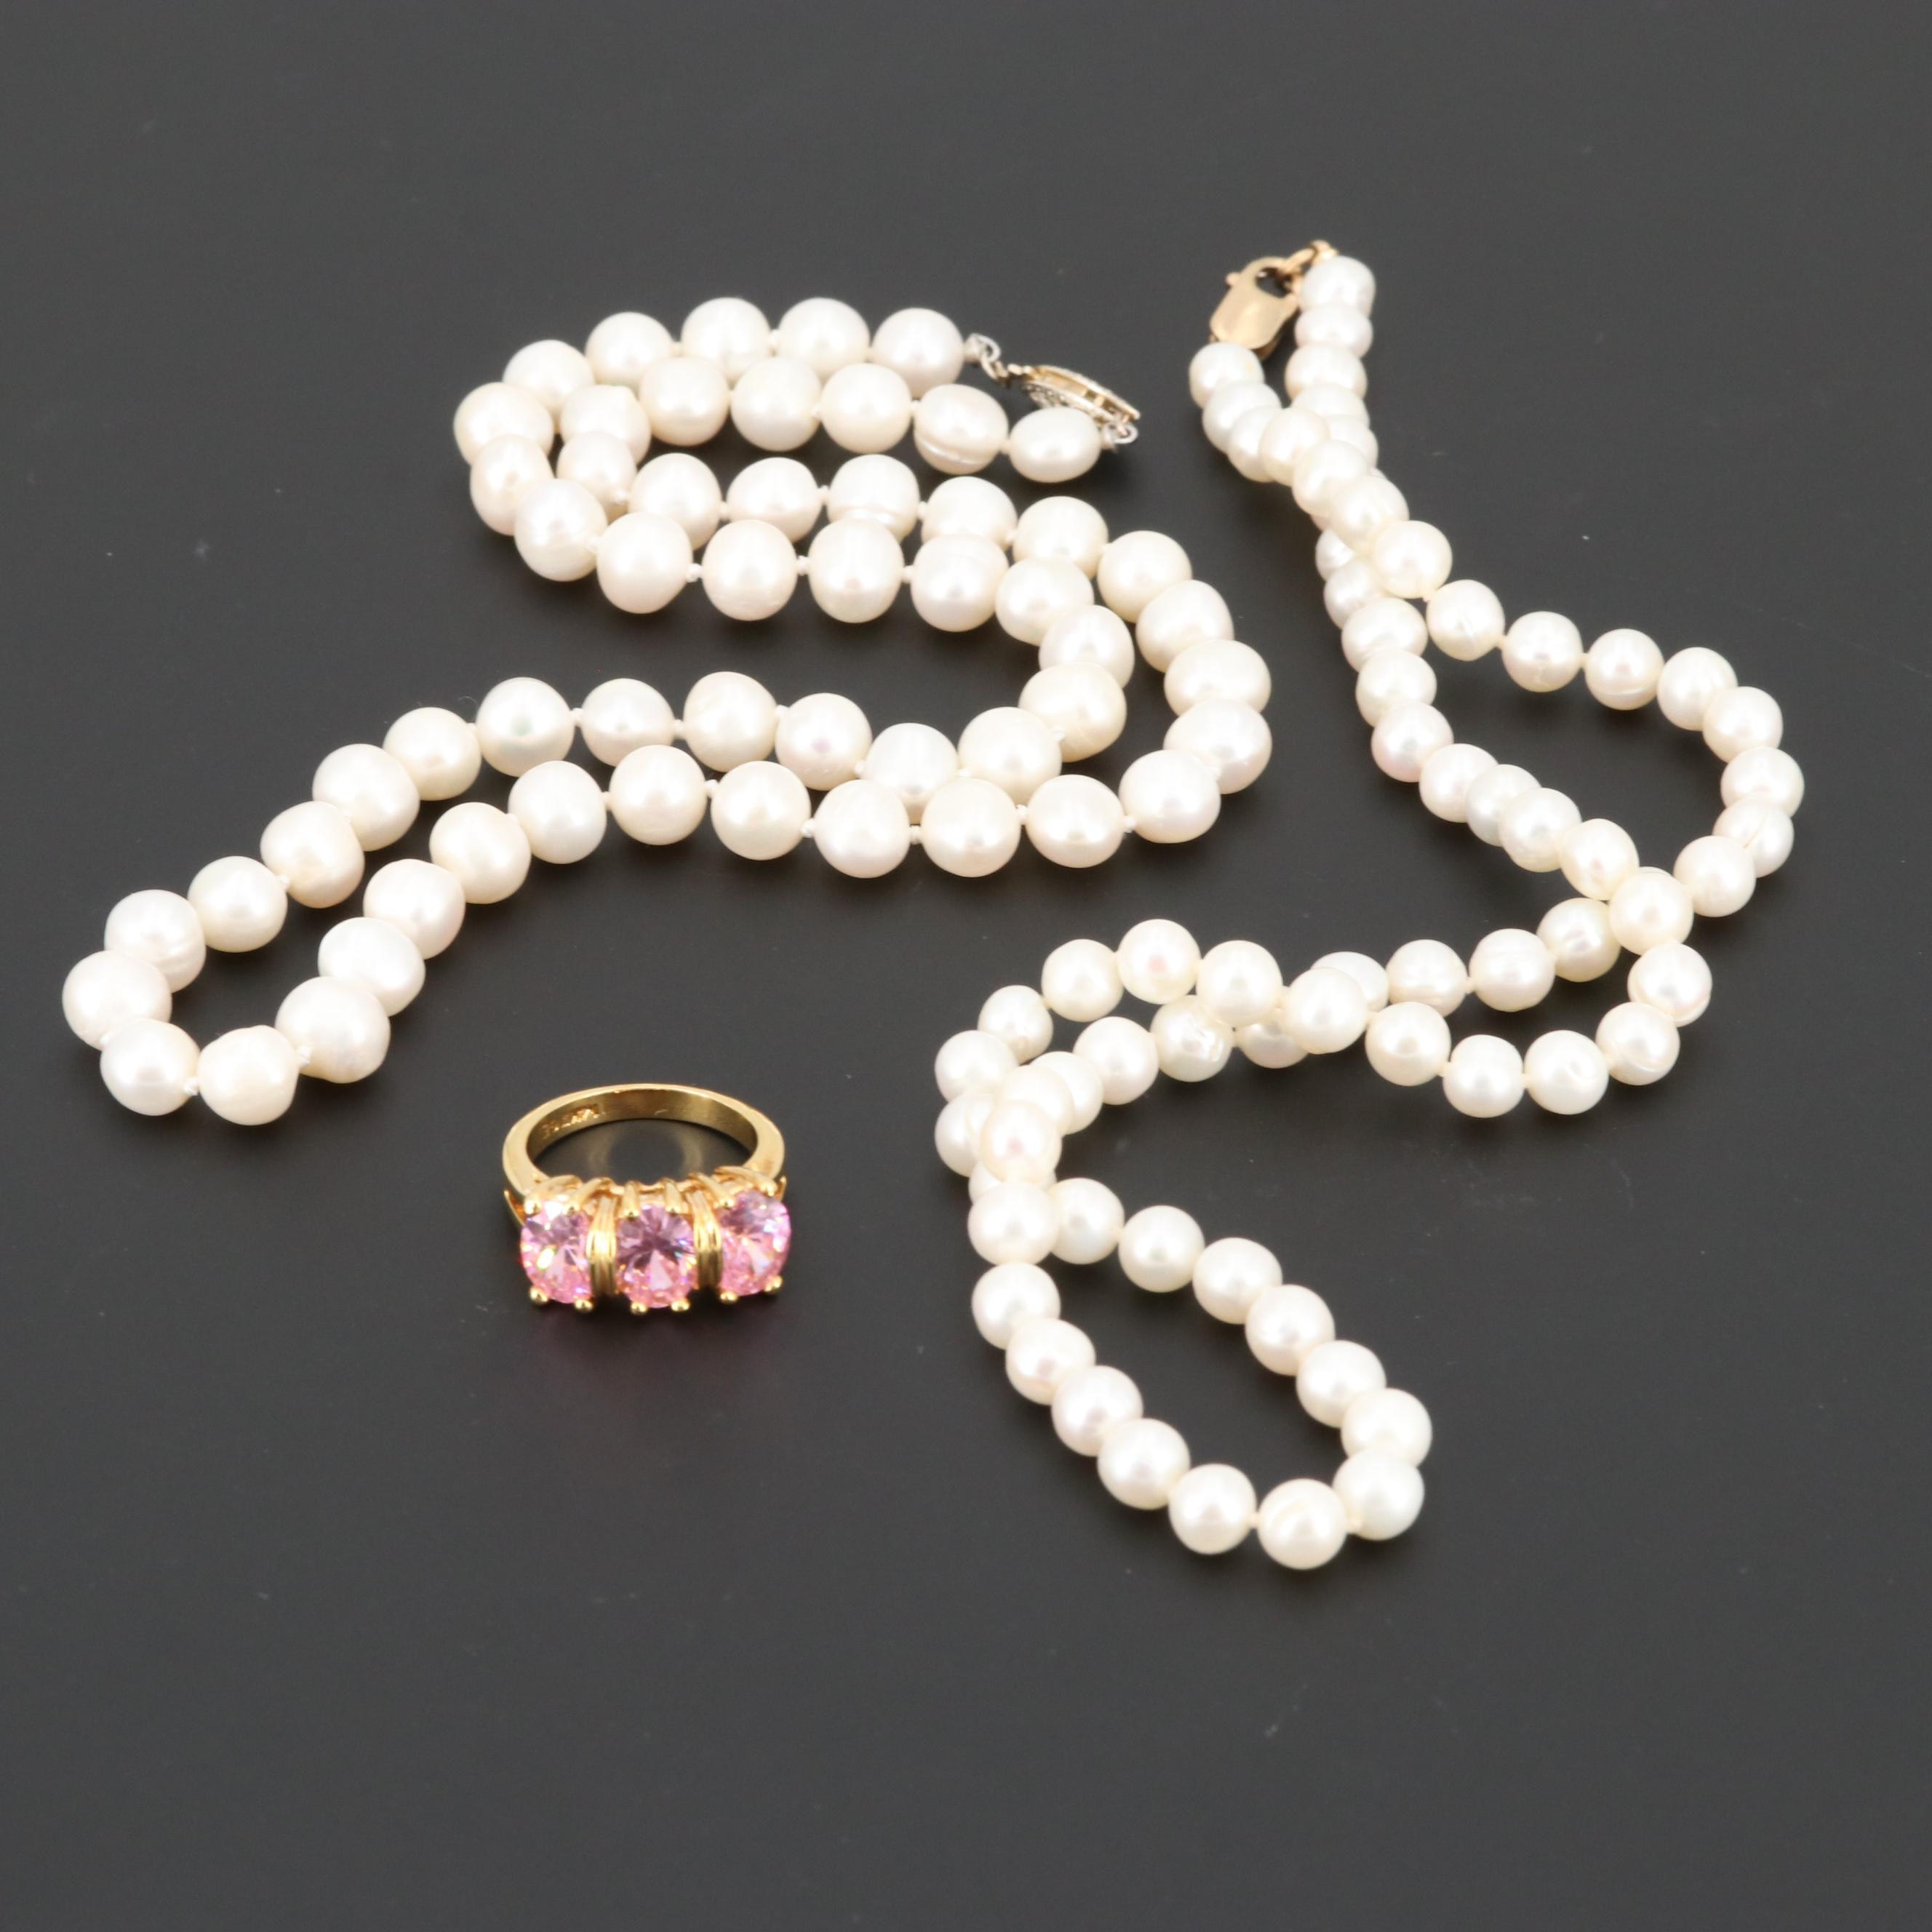 Cultured Pearl Necklaces and Cubic Zirconia Ring Including Sterling